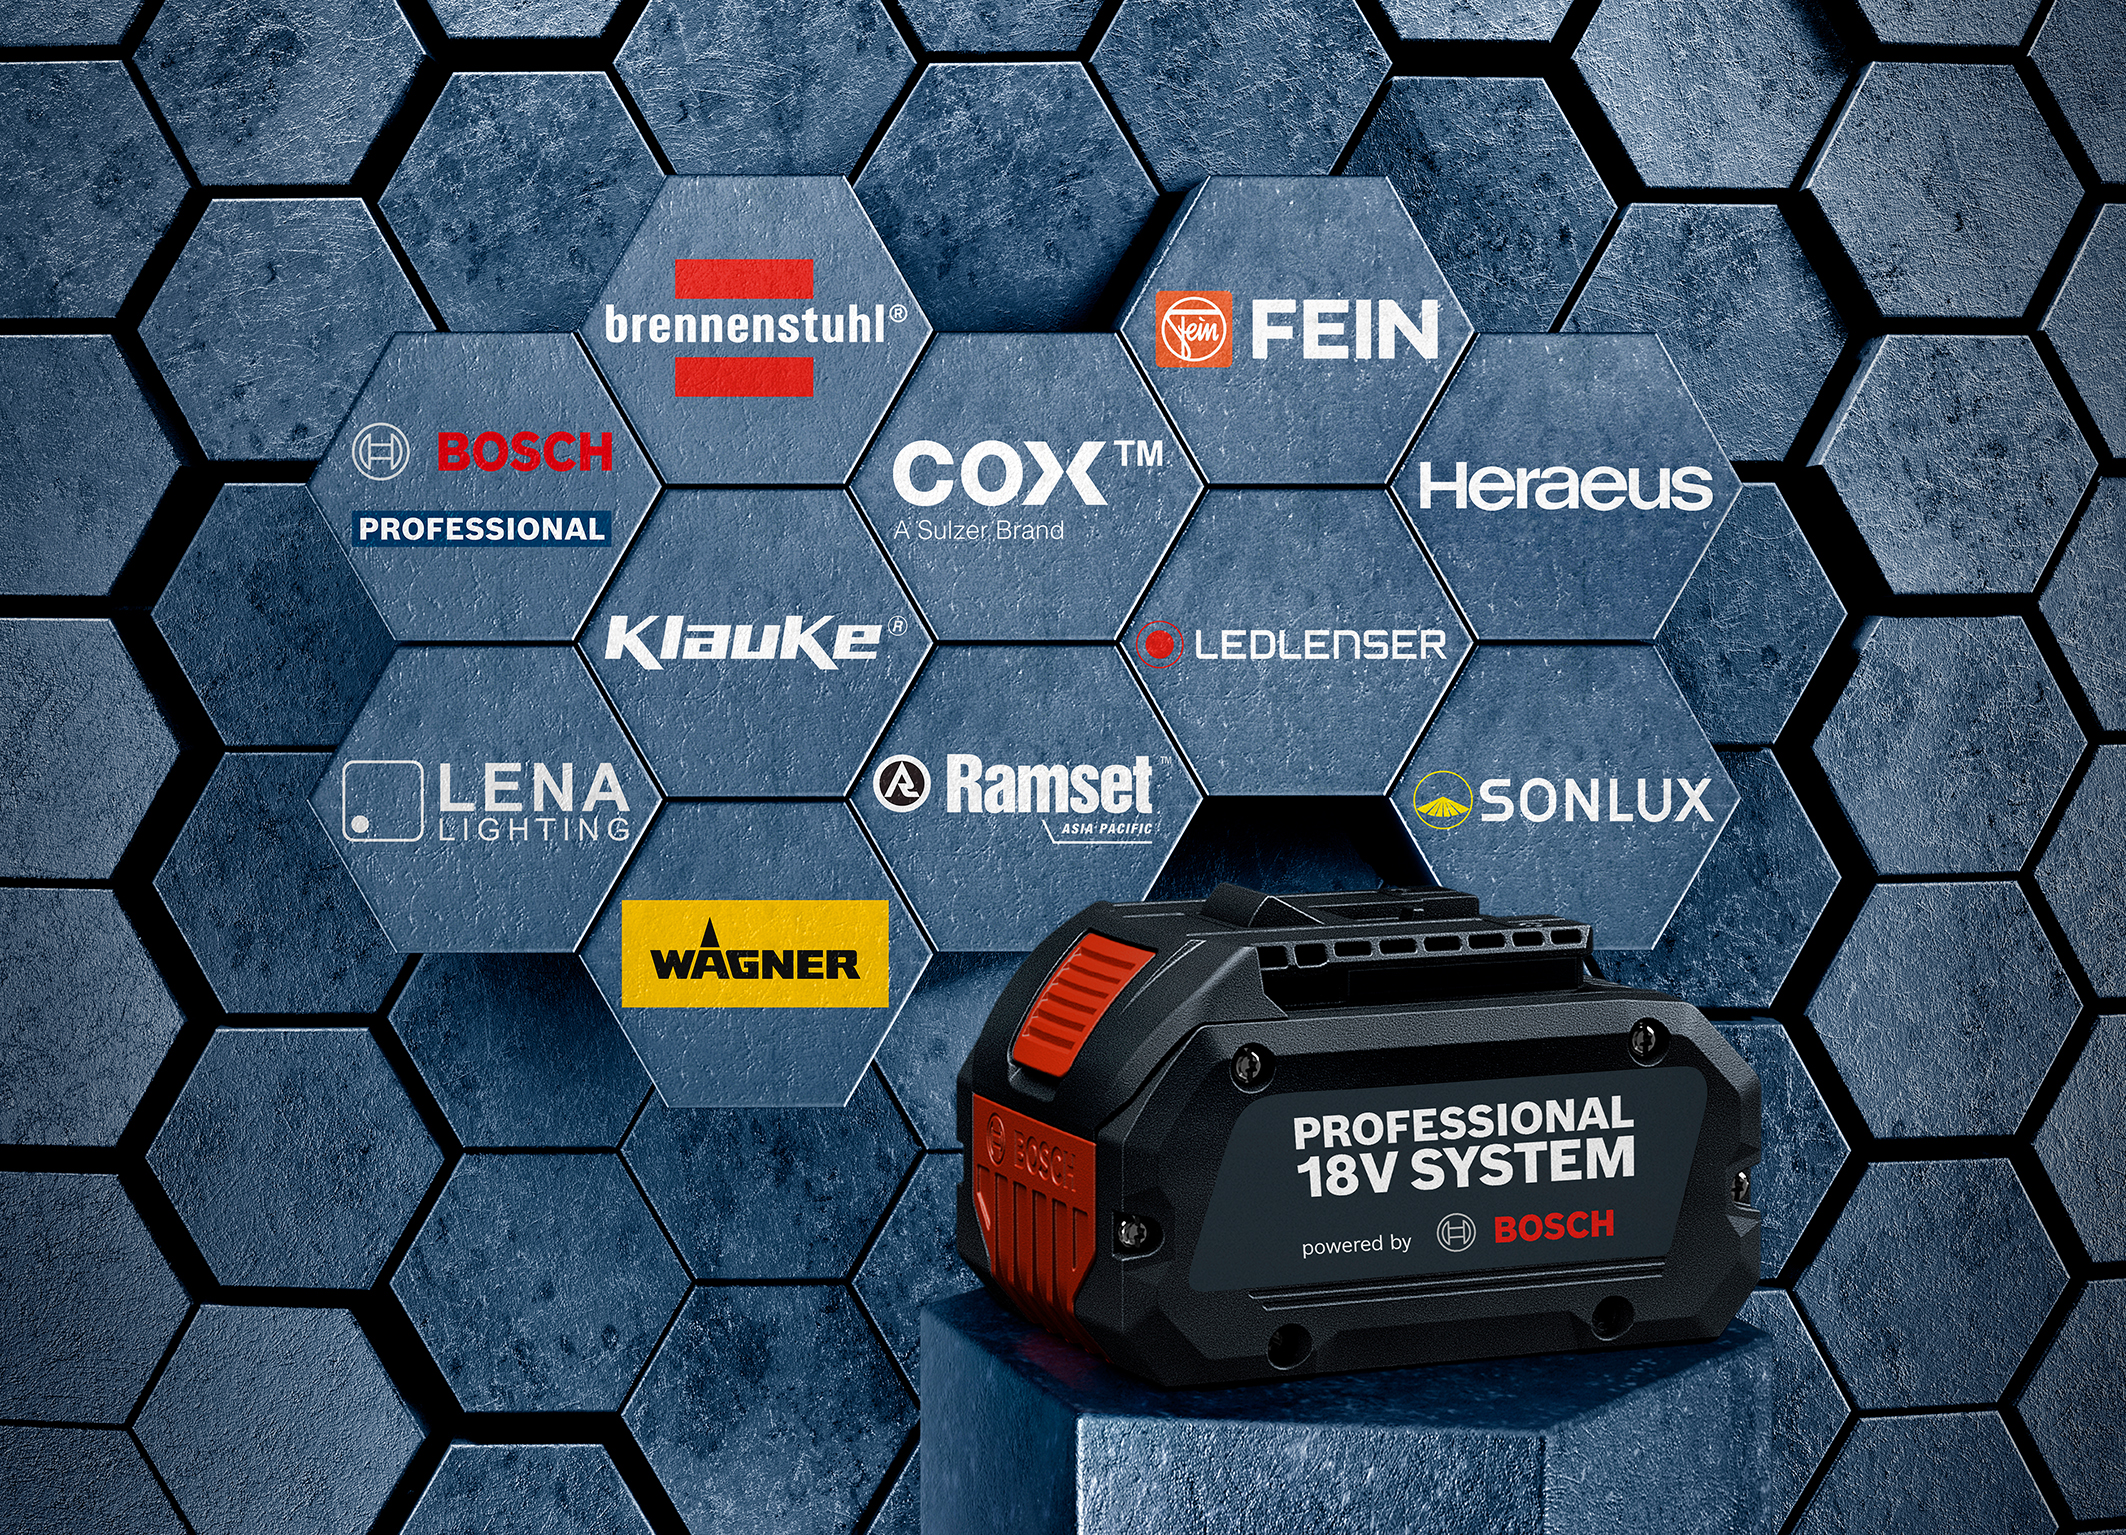 Fein and Heraeus extend range of applications: Further expansion of the Bosch Professional 18V System